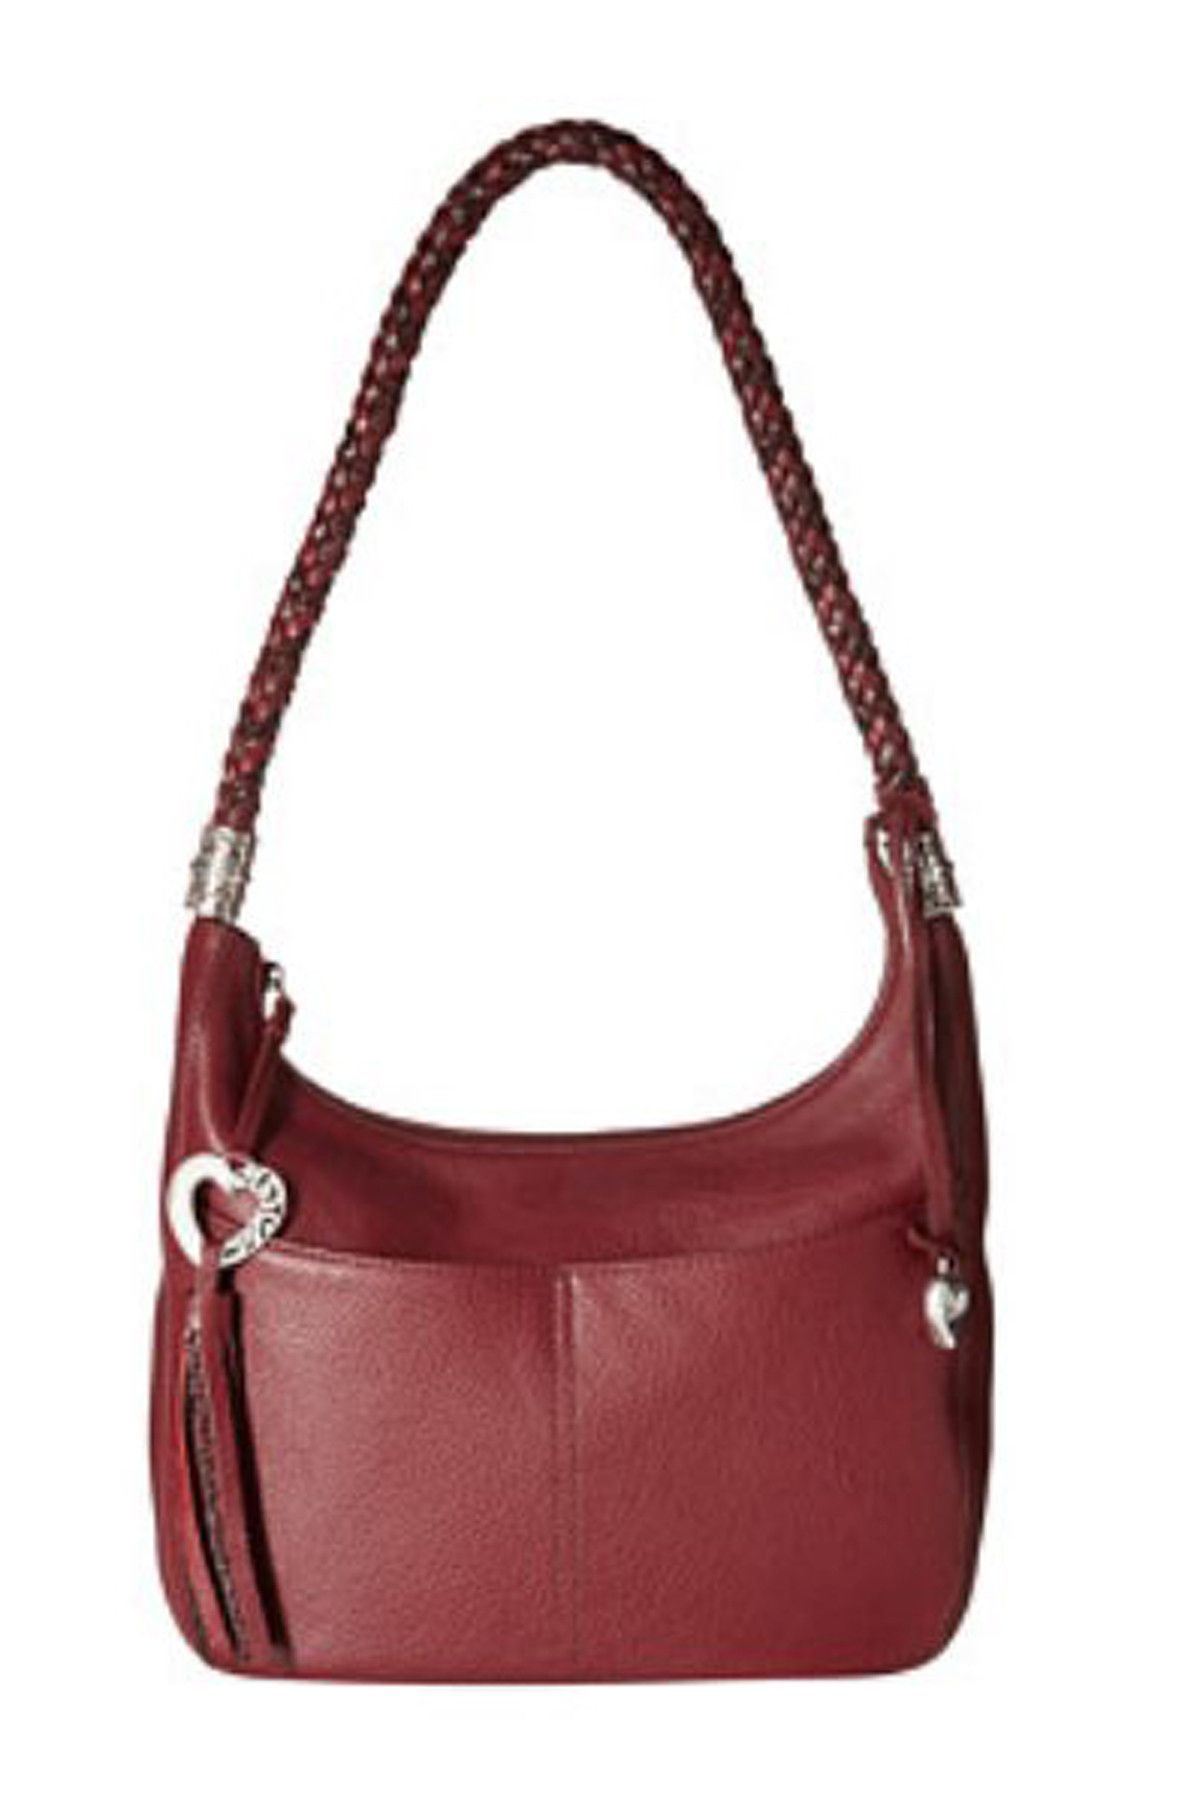 c42b3b080a Brighton Barbados Ziptop Hobo Style # H204 The classic simplicity draws  your eyes to this hobo